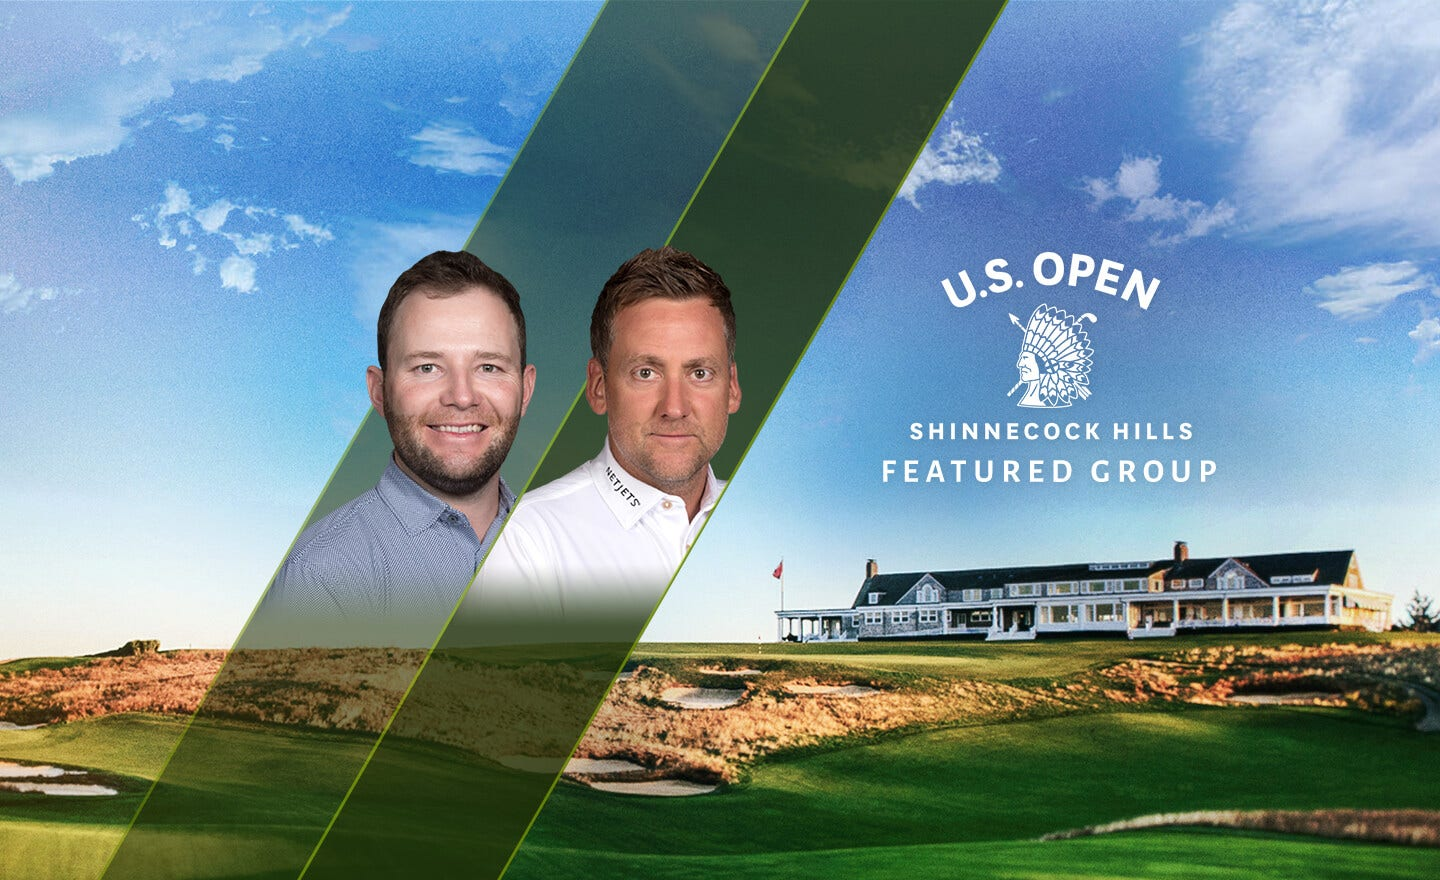 2018 U.S. Open - Featured Group #1